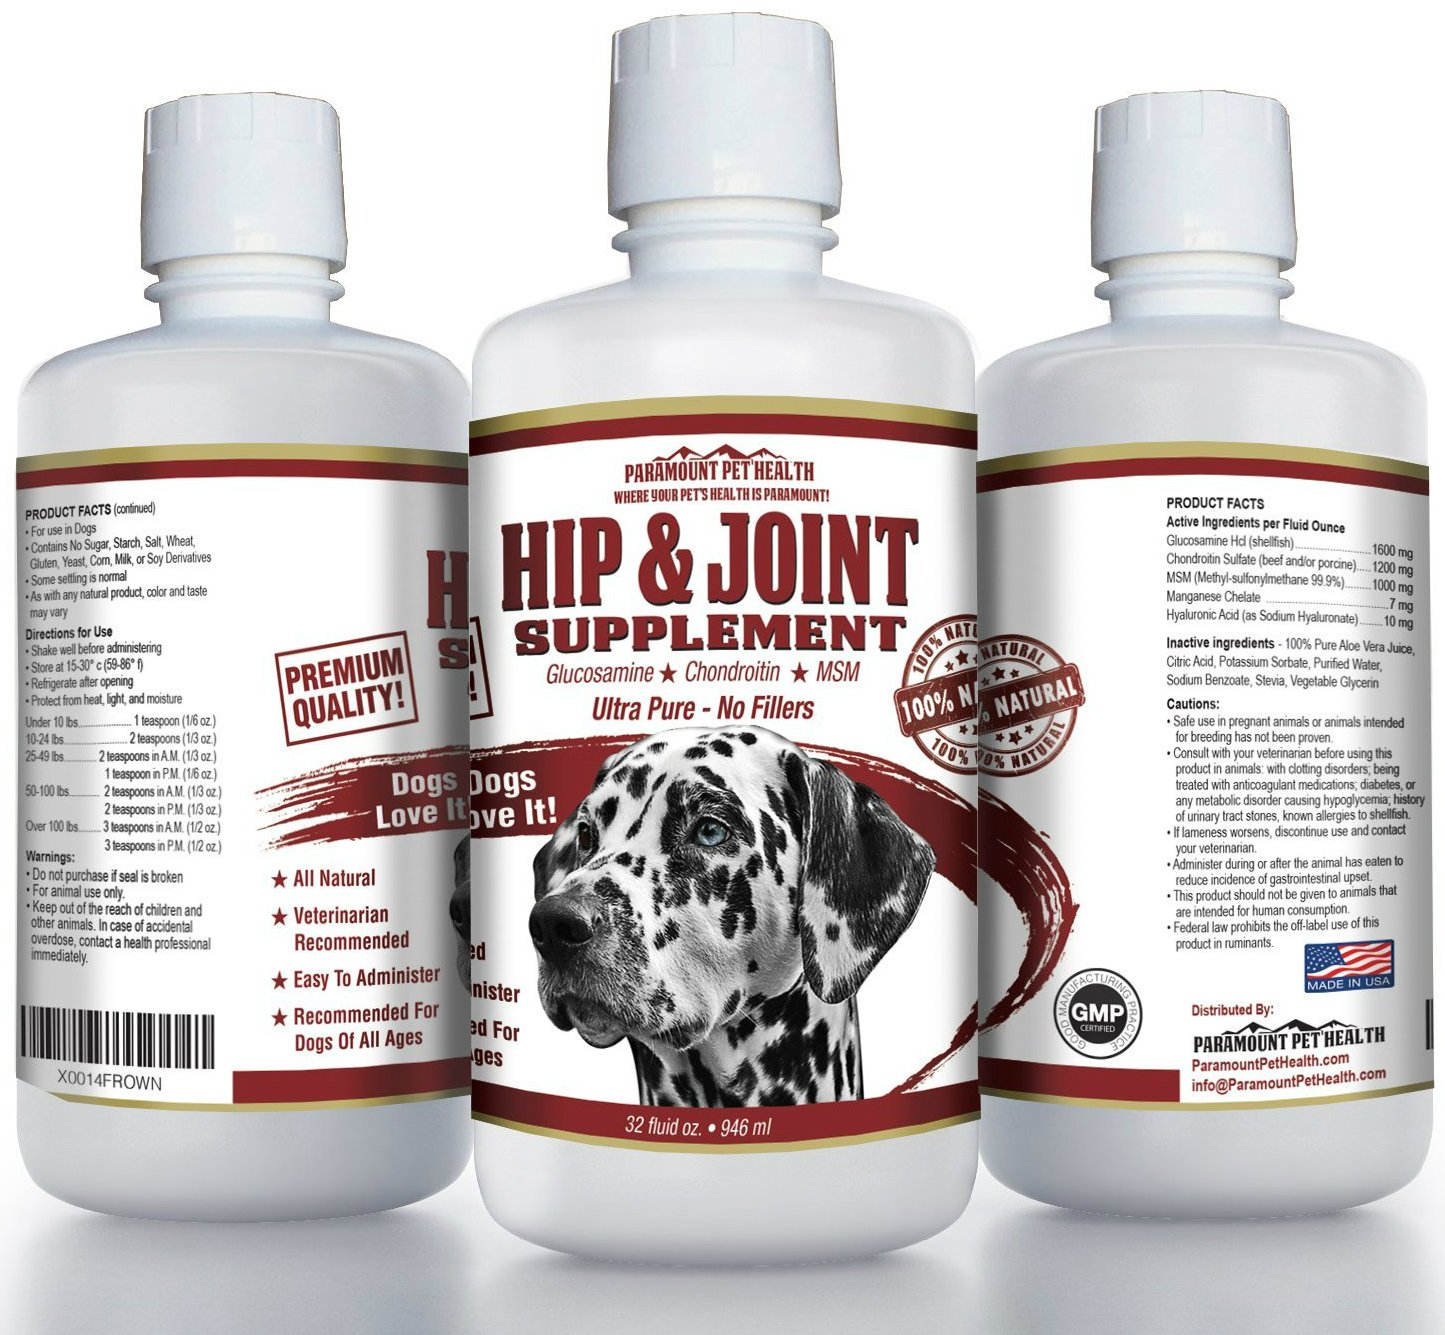 All Natural Liquid Glucosamine For Dogs | 62% More Glucosamine And 50% More Chondroitin Than Other Brands | PREMIUM Hip and Joint Supplement For Dogs Chondroitin MSM and Hyaluronic Acid 32 oz